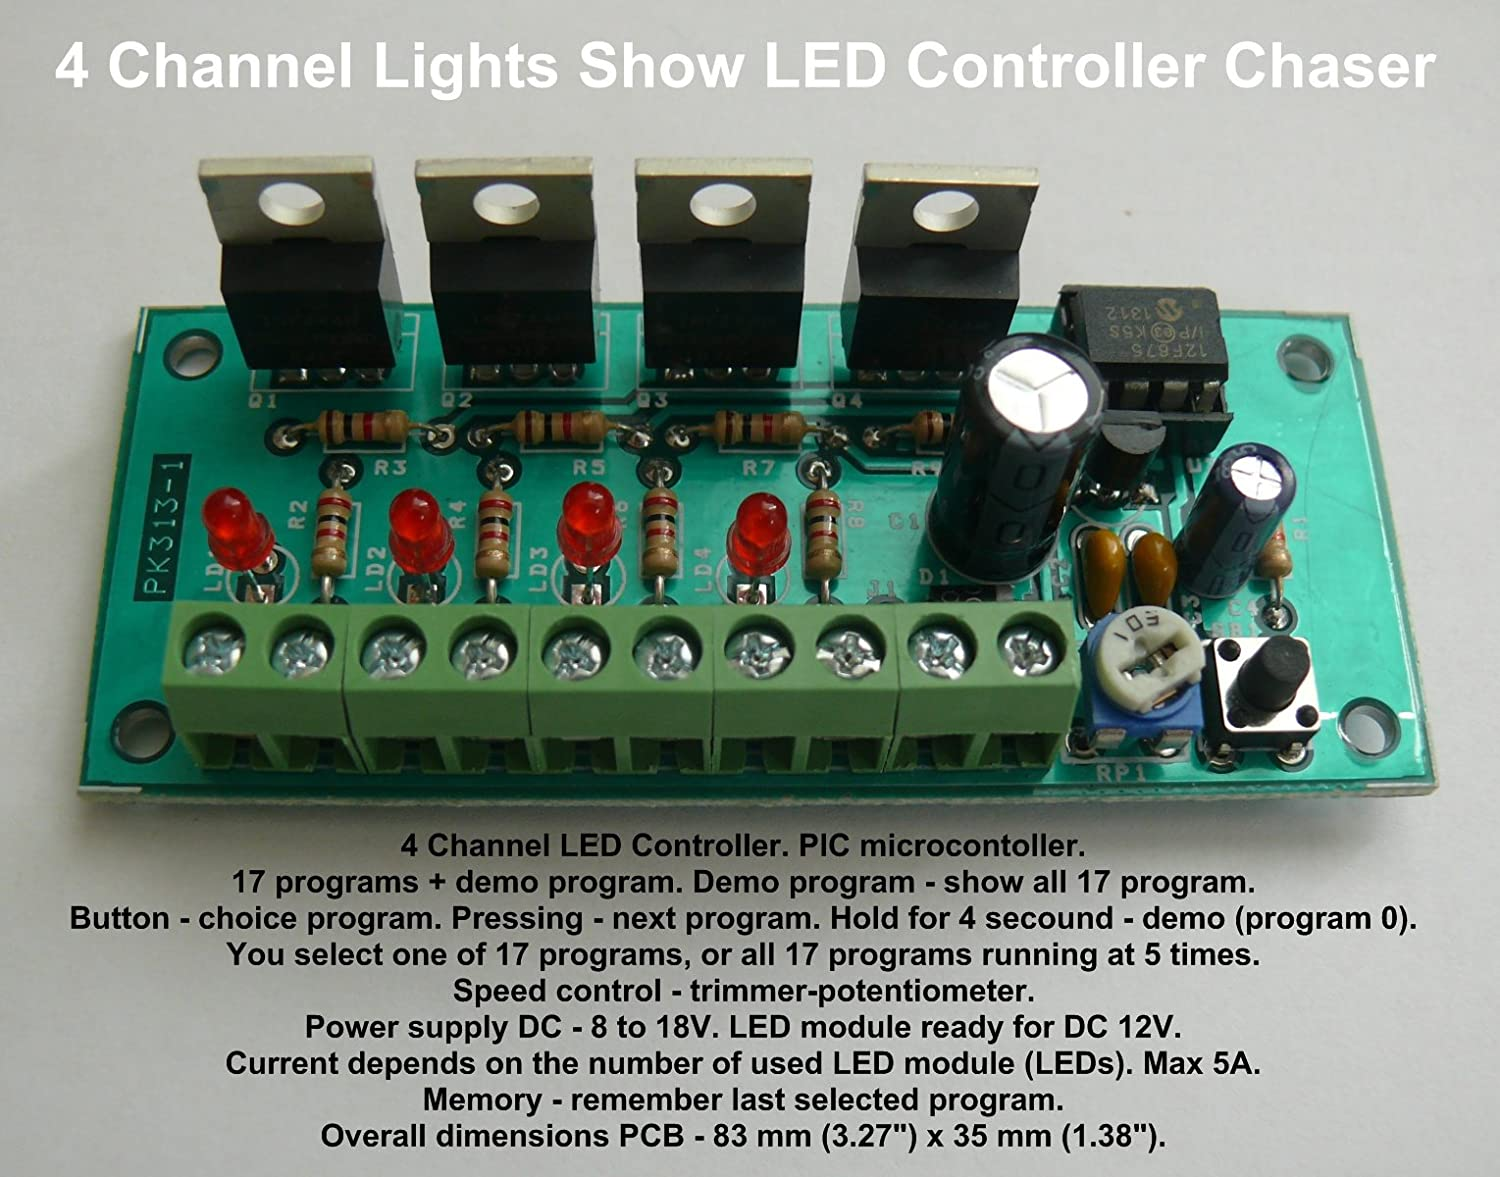 4 Channel Lights Show Led Controller Chaser Hk9984 Toys How To Make Mp3 Player At Home Using 555 Timer Cd4017 Games